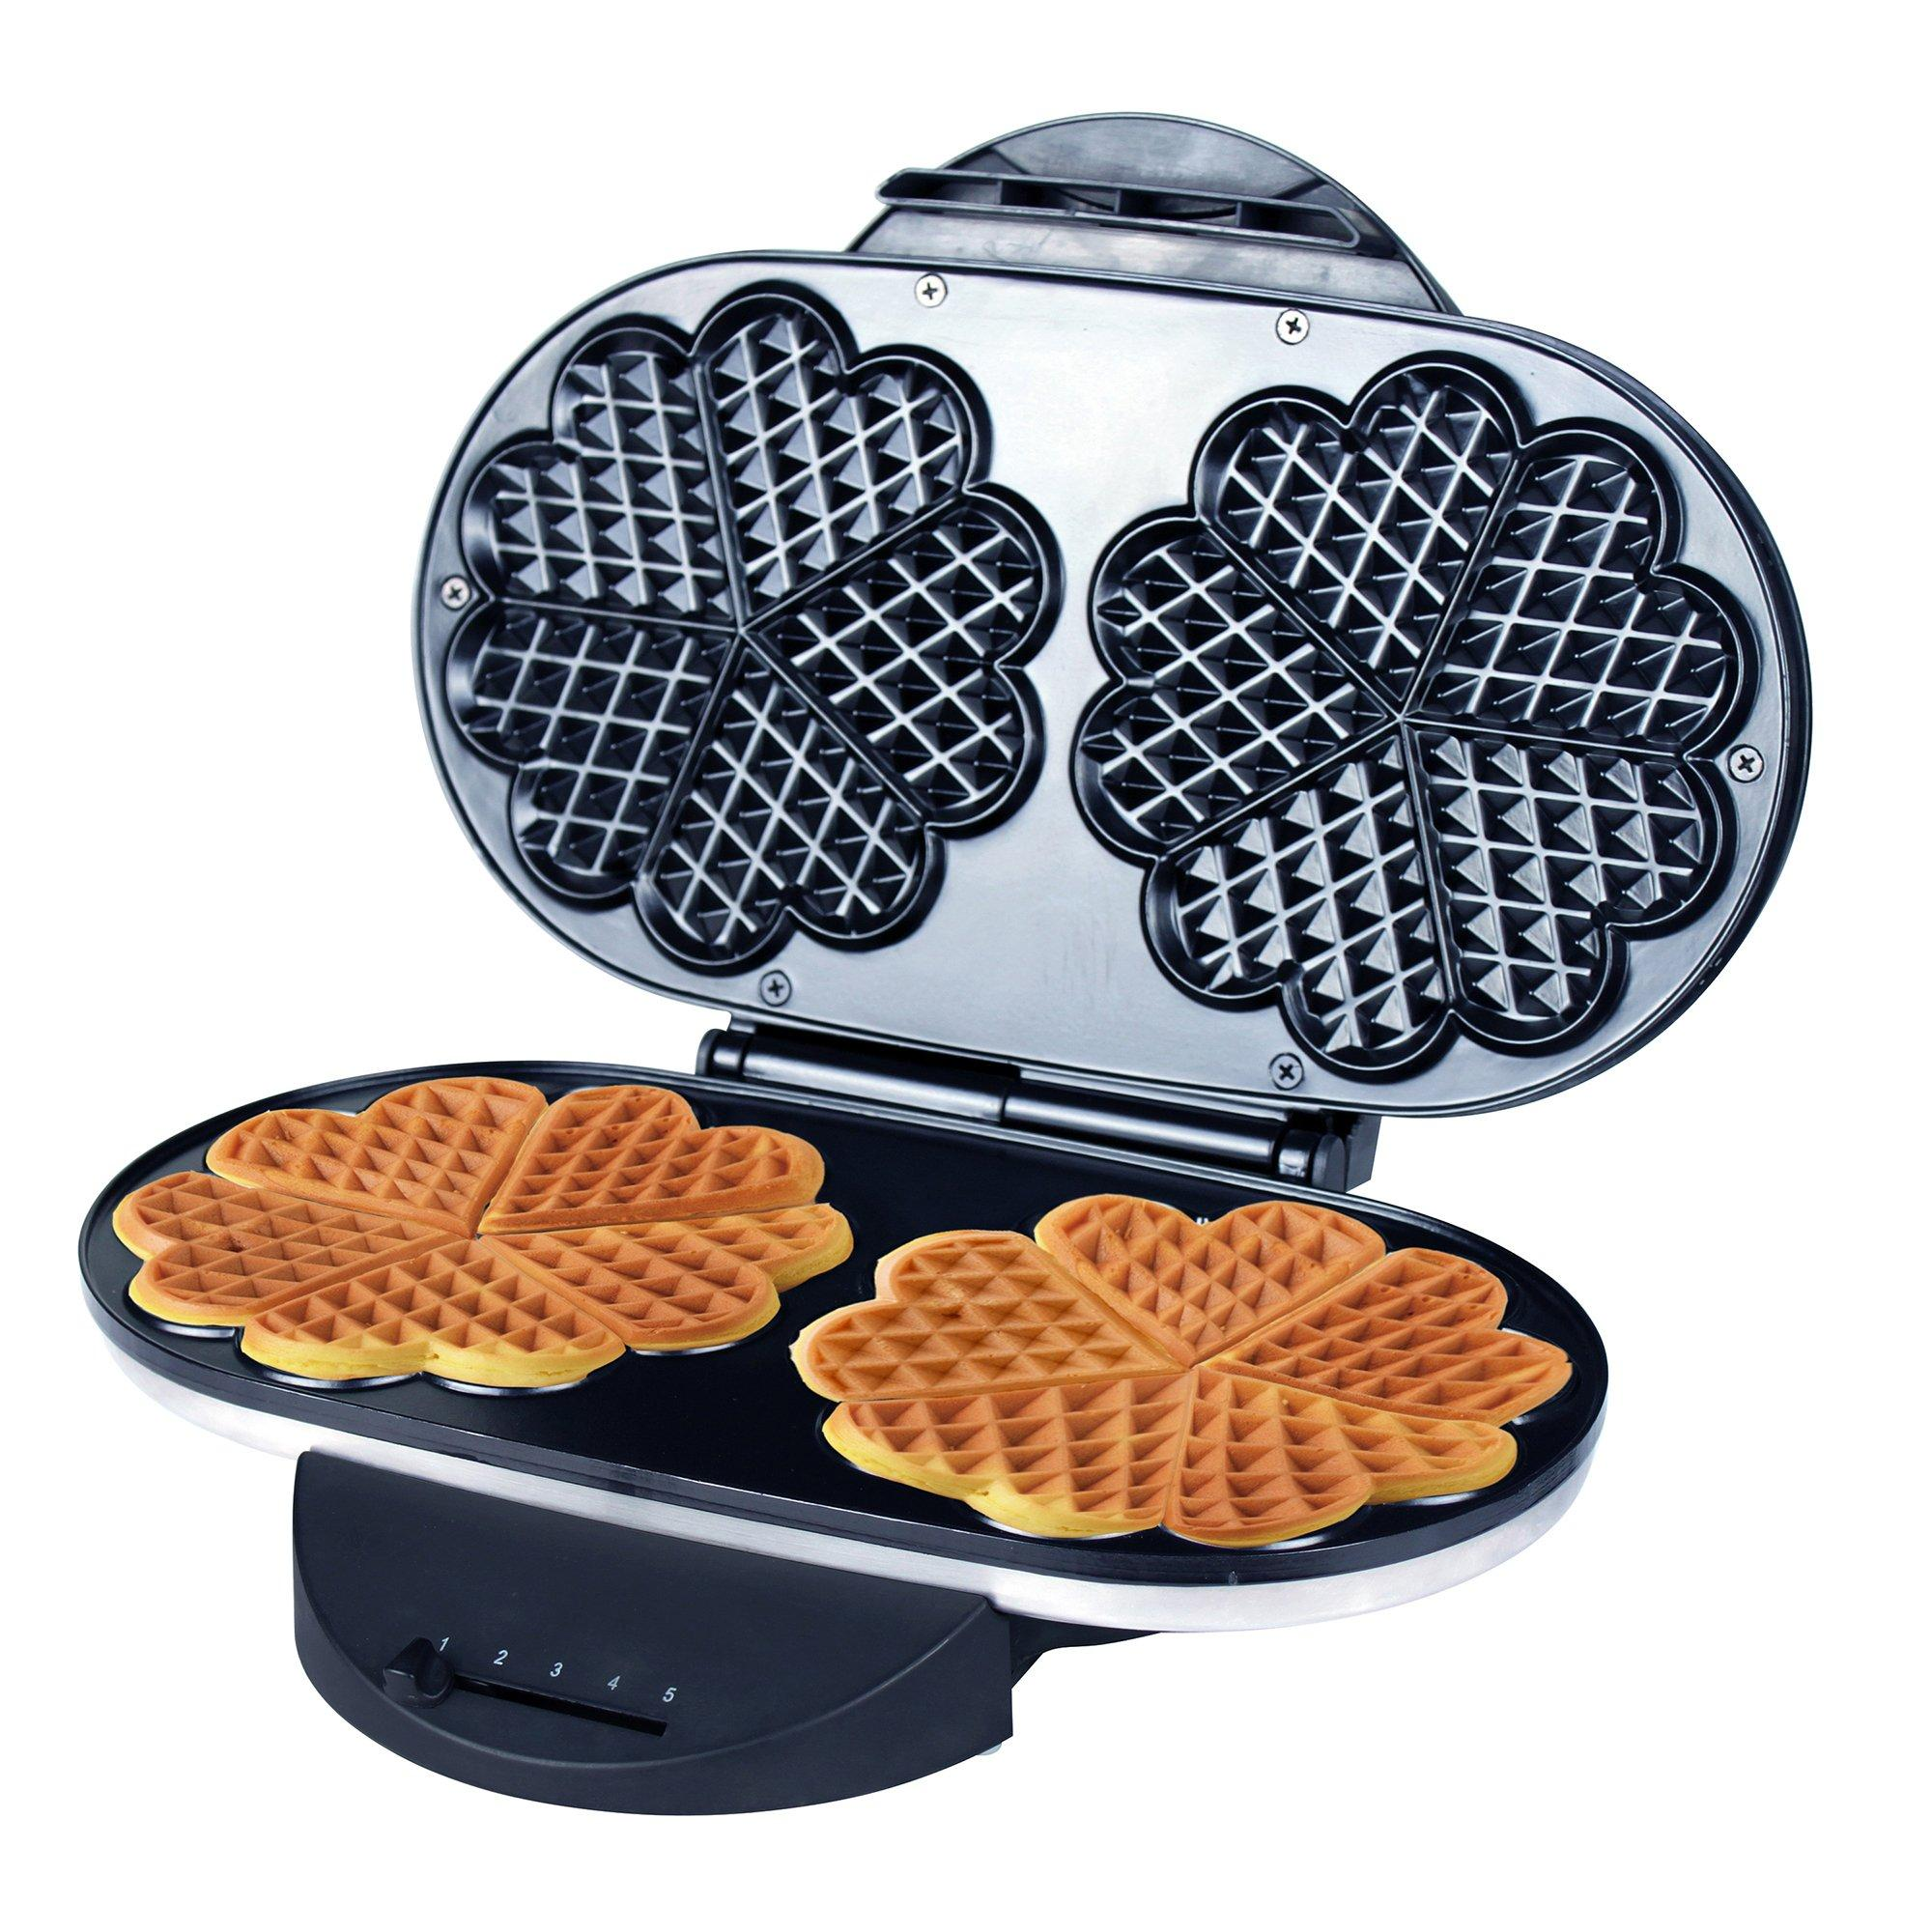 Zz Heart Waffle Maker With Non Stick Plate 1200w Black Silver Ebay